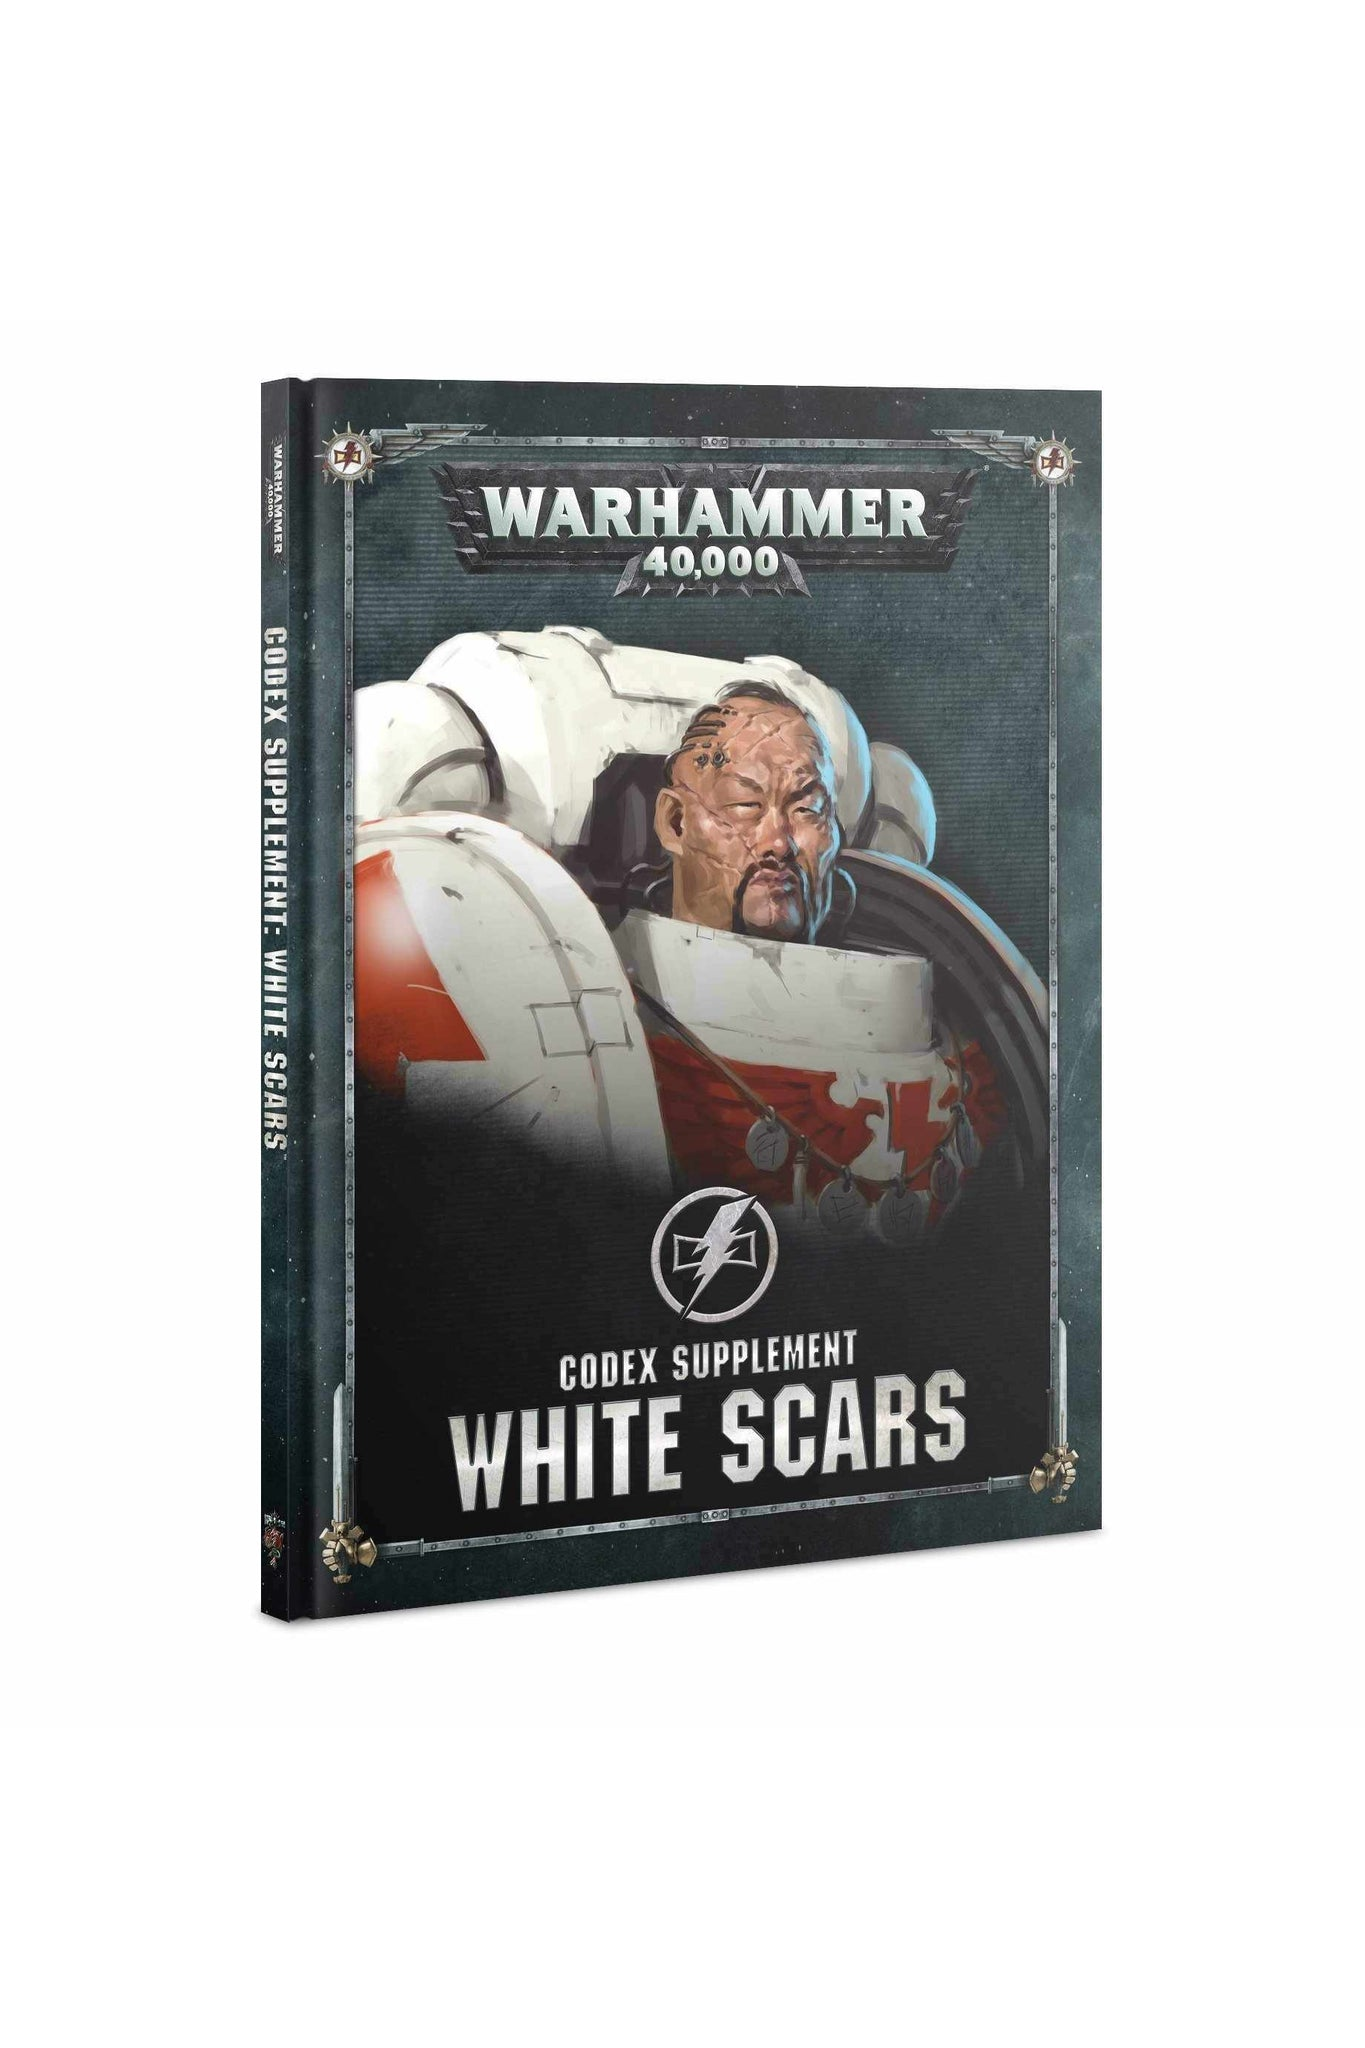 40k-codex-supplement-white-scars-games-workshop-9781788266444-thegamersden.com